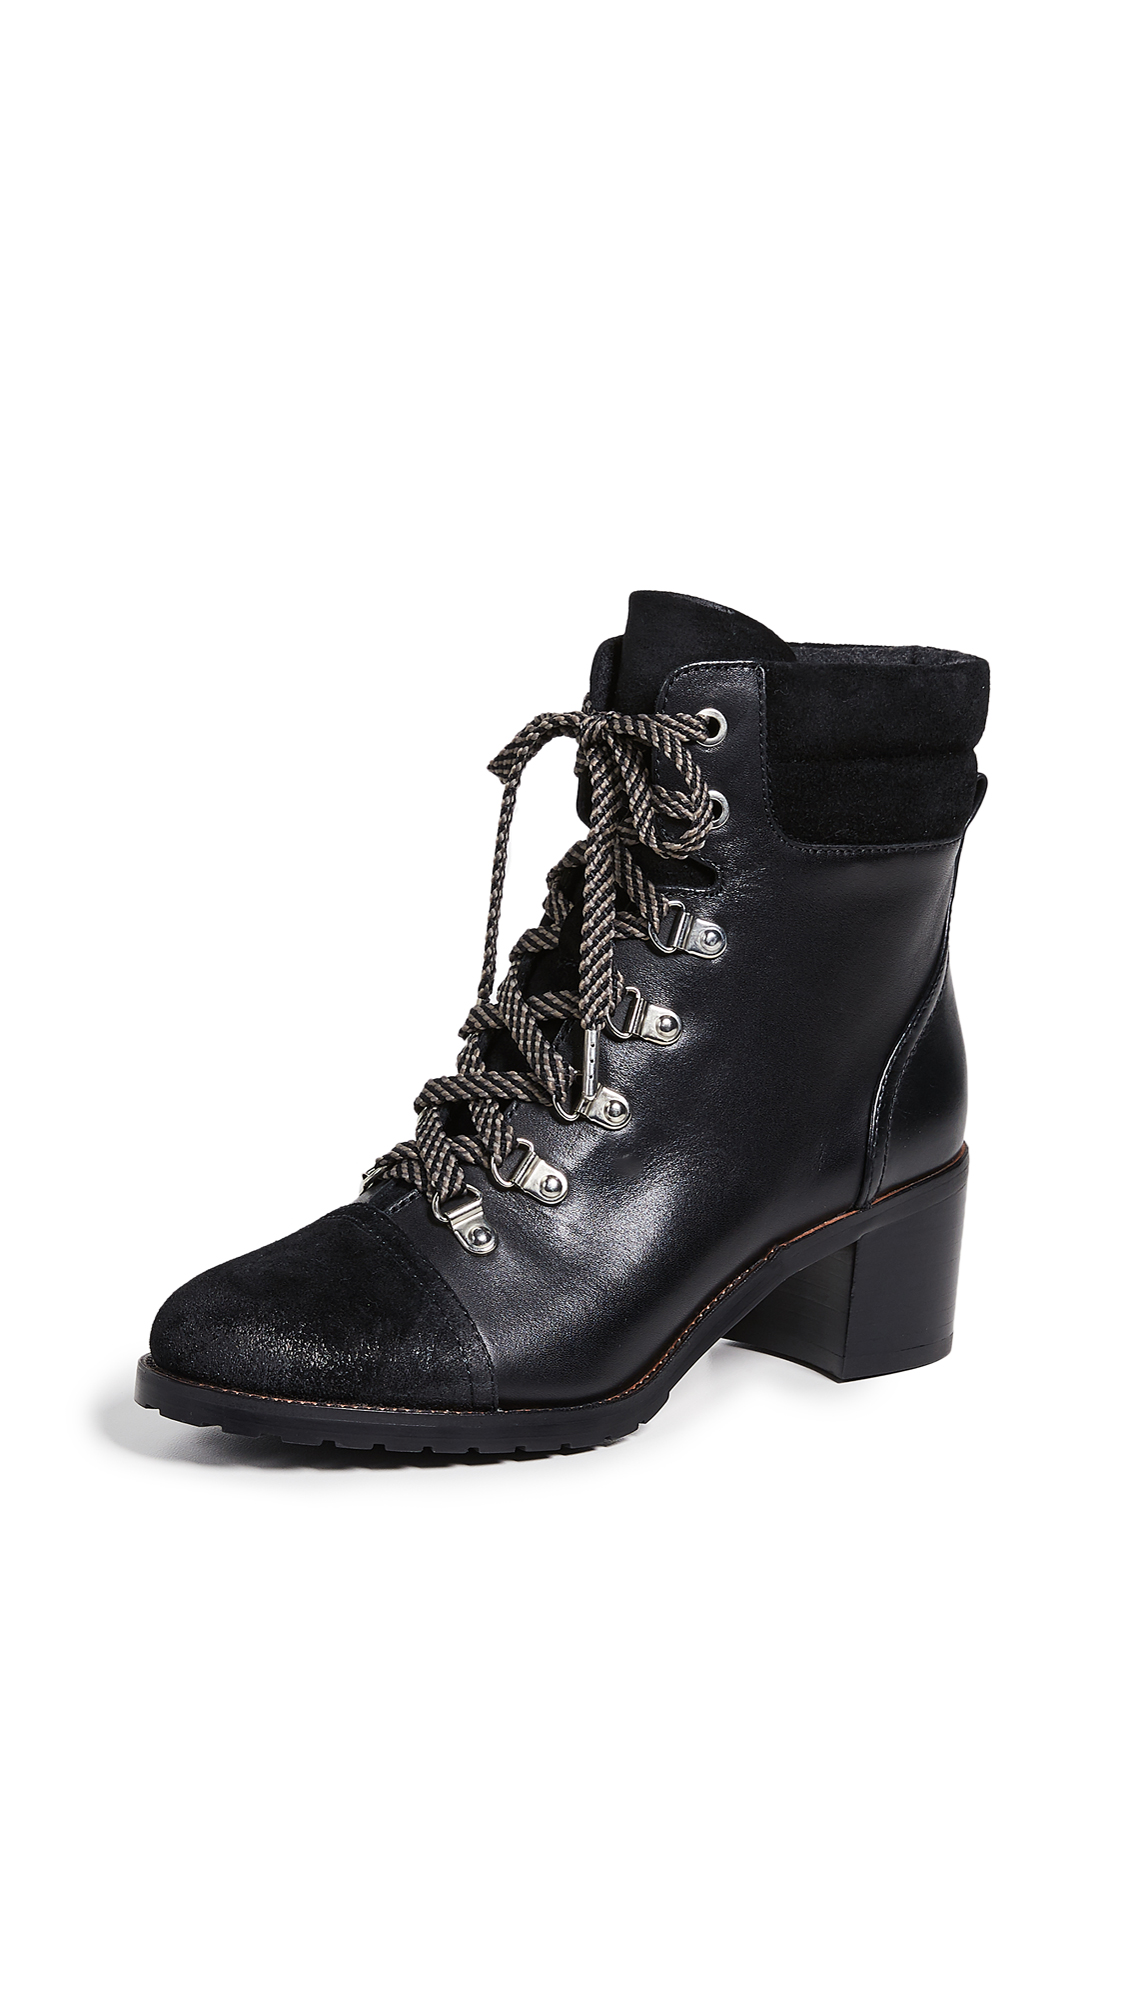 Sam Edelman Manchester Booties - Black